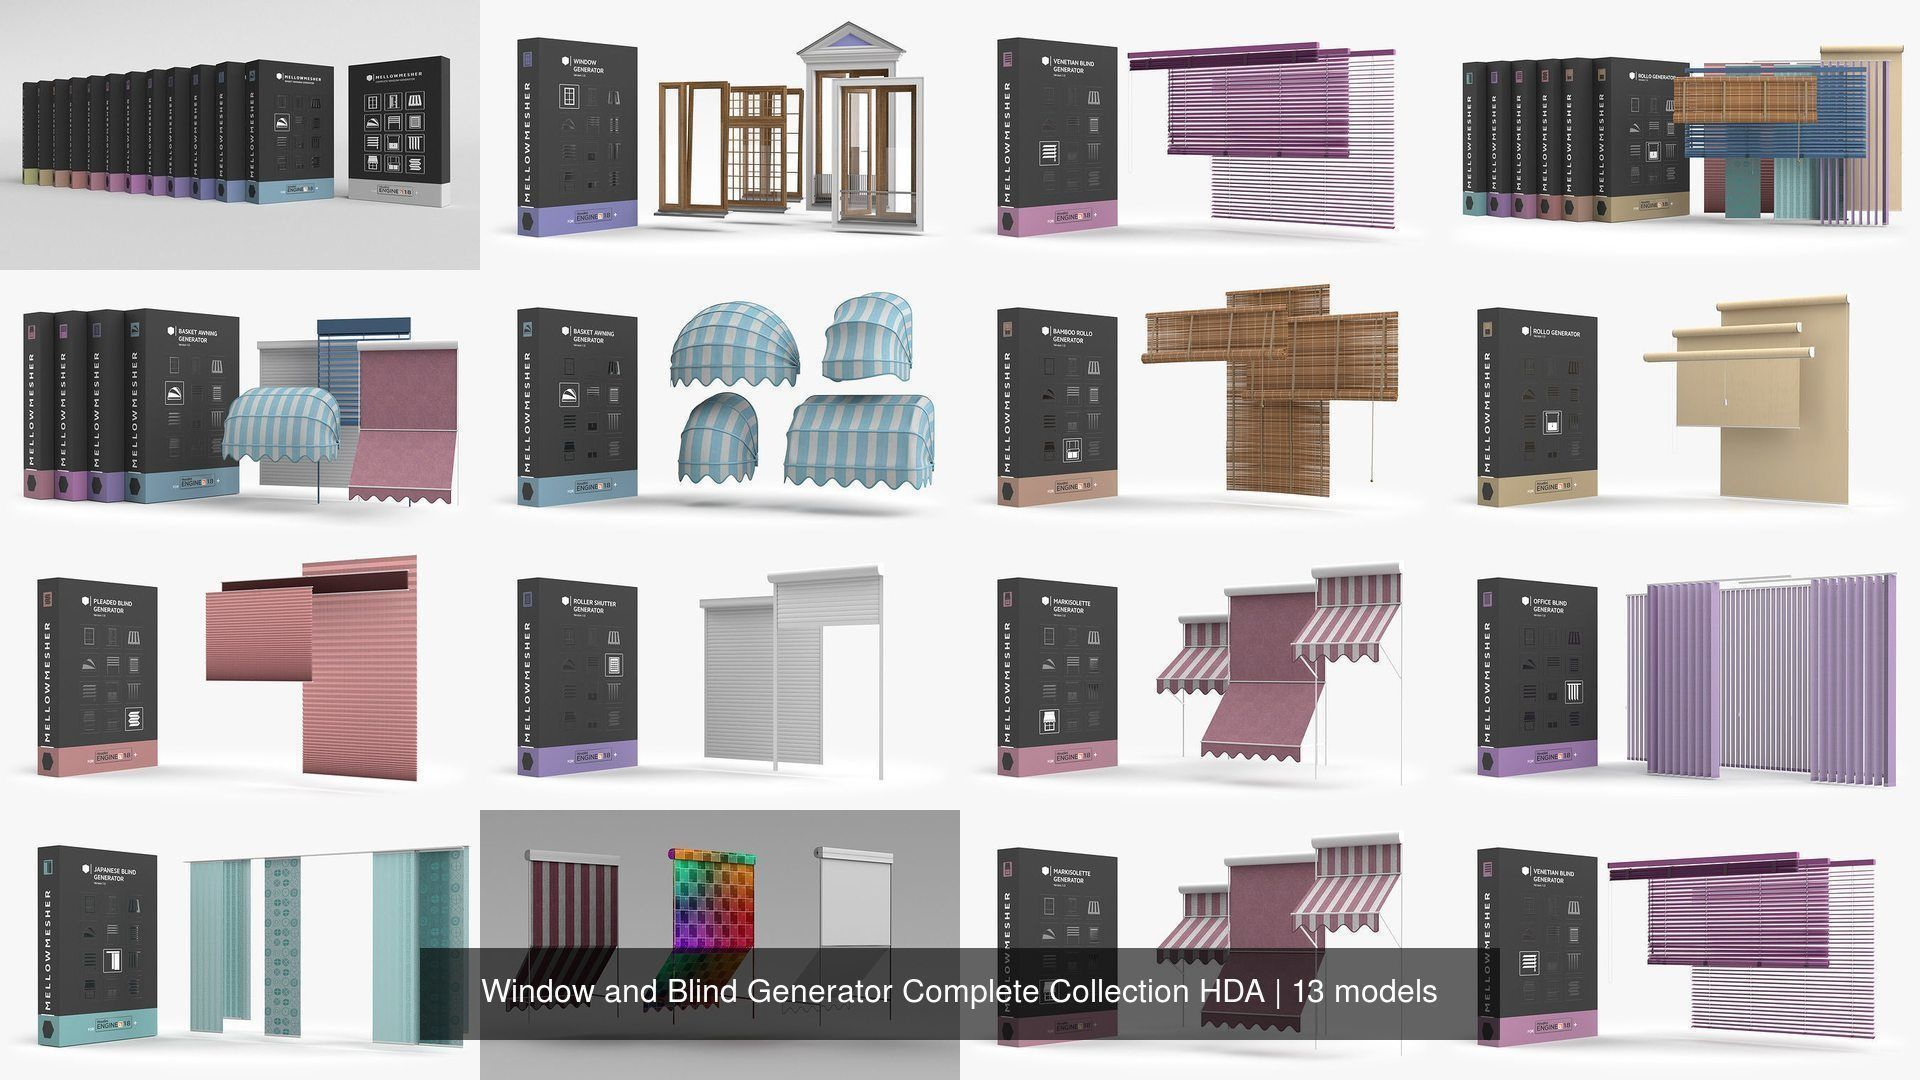 Window and Blind Generator Complete Collection HDA